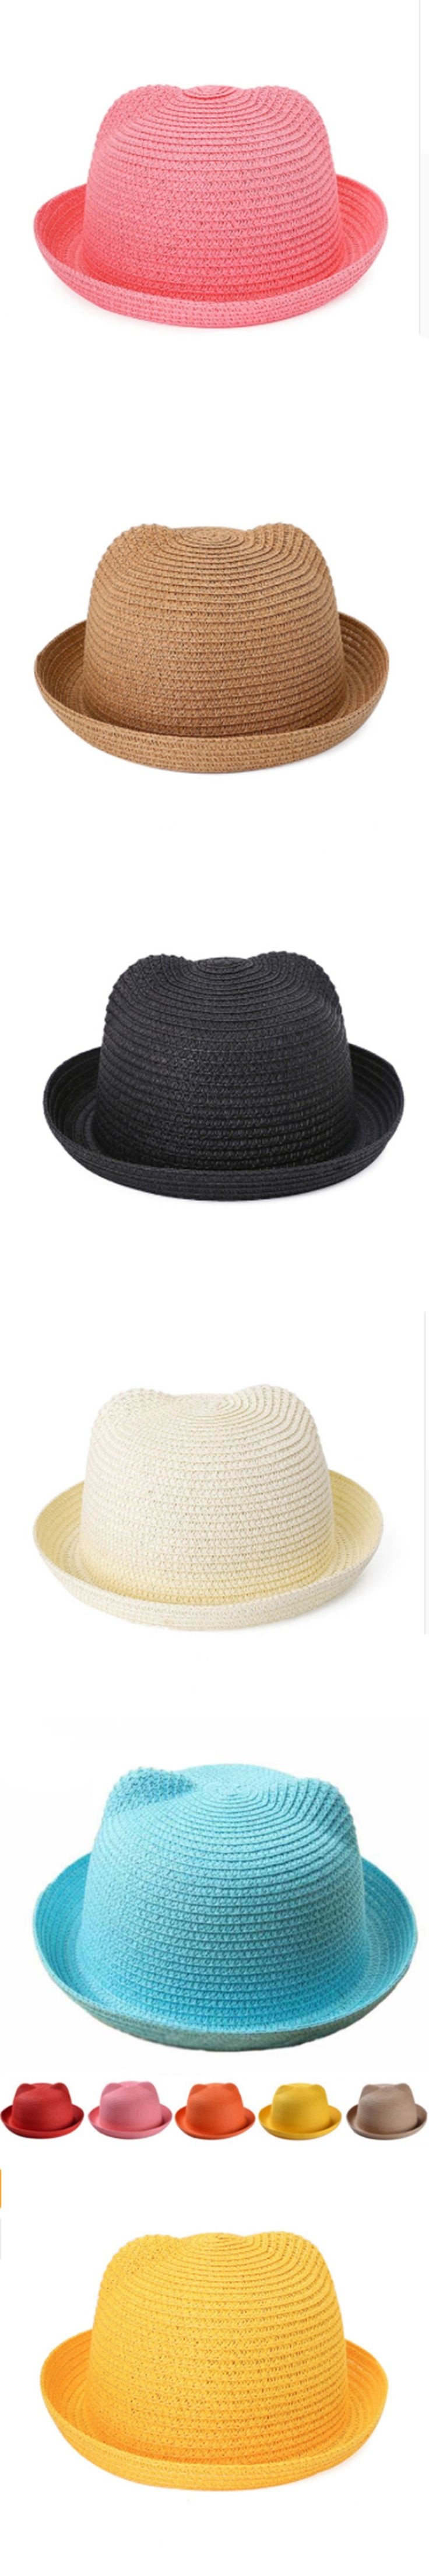 Good Straw Hats Kids Character Ear Decoration Summer Cap Baby Sun Hat for Girls Boys Solid Bucket Cap for Children Beach Hat